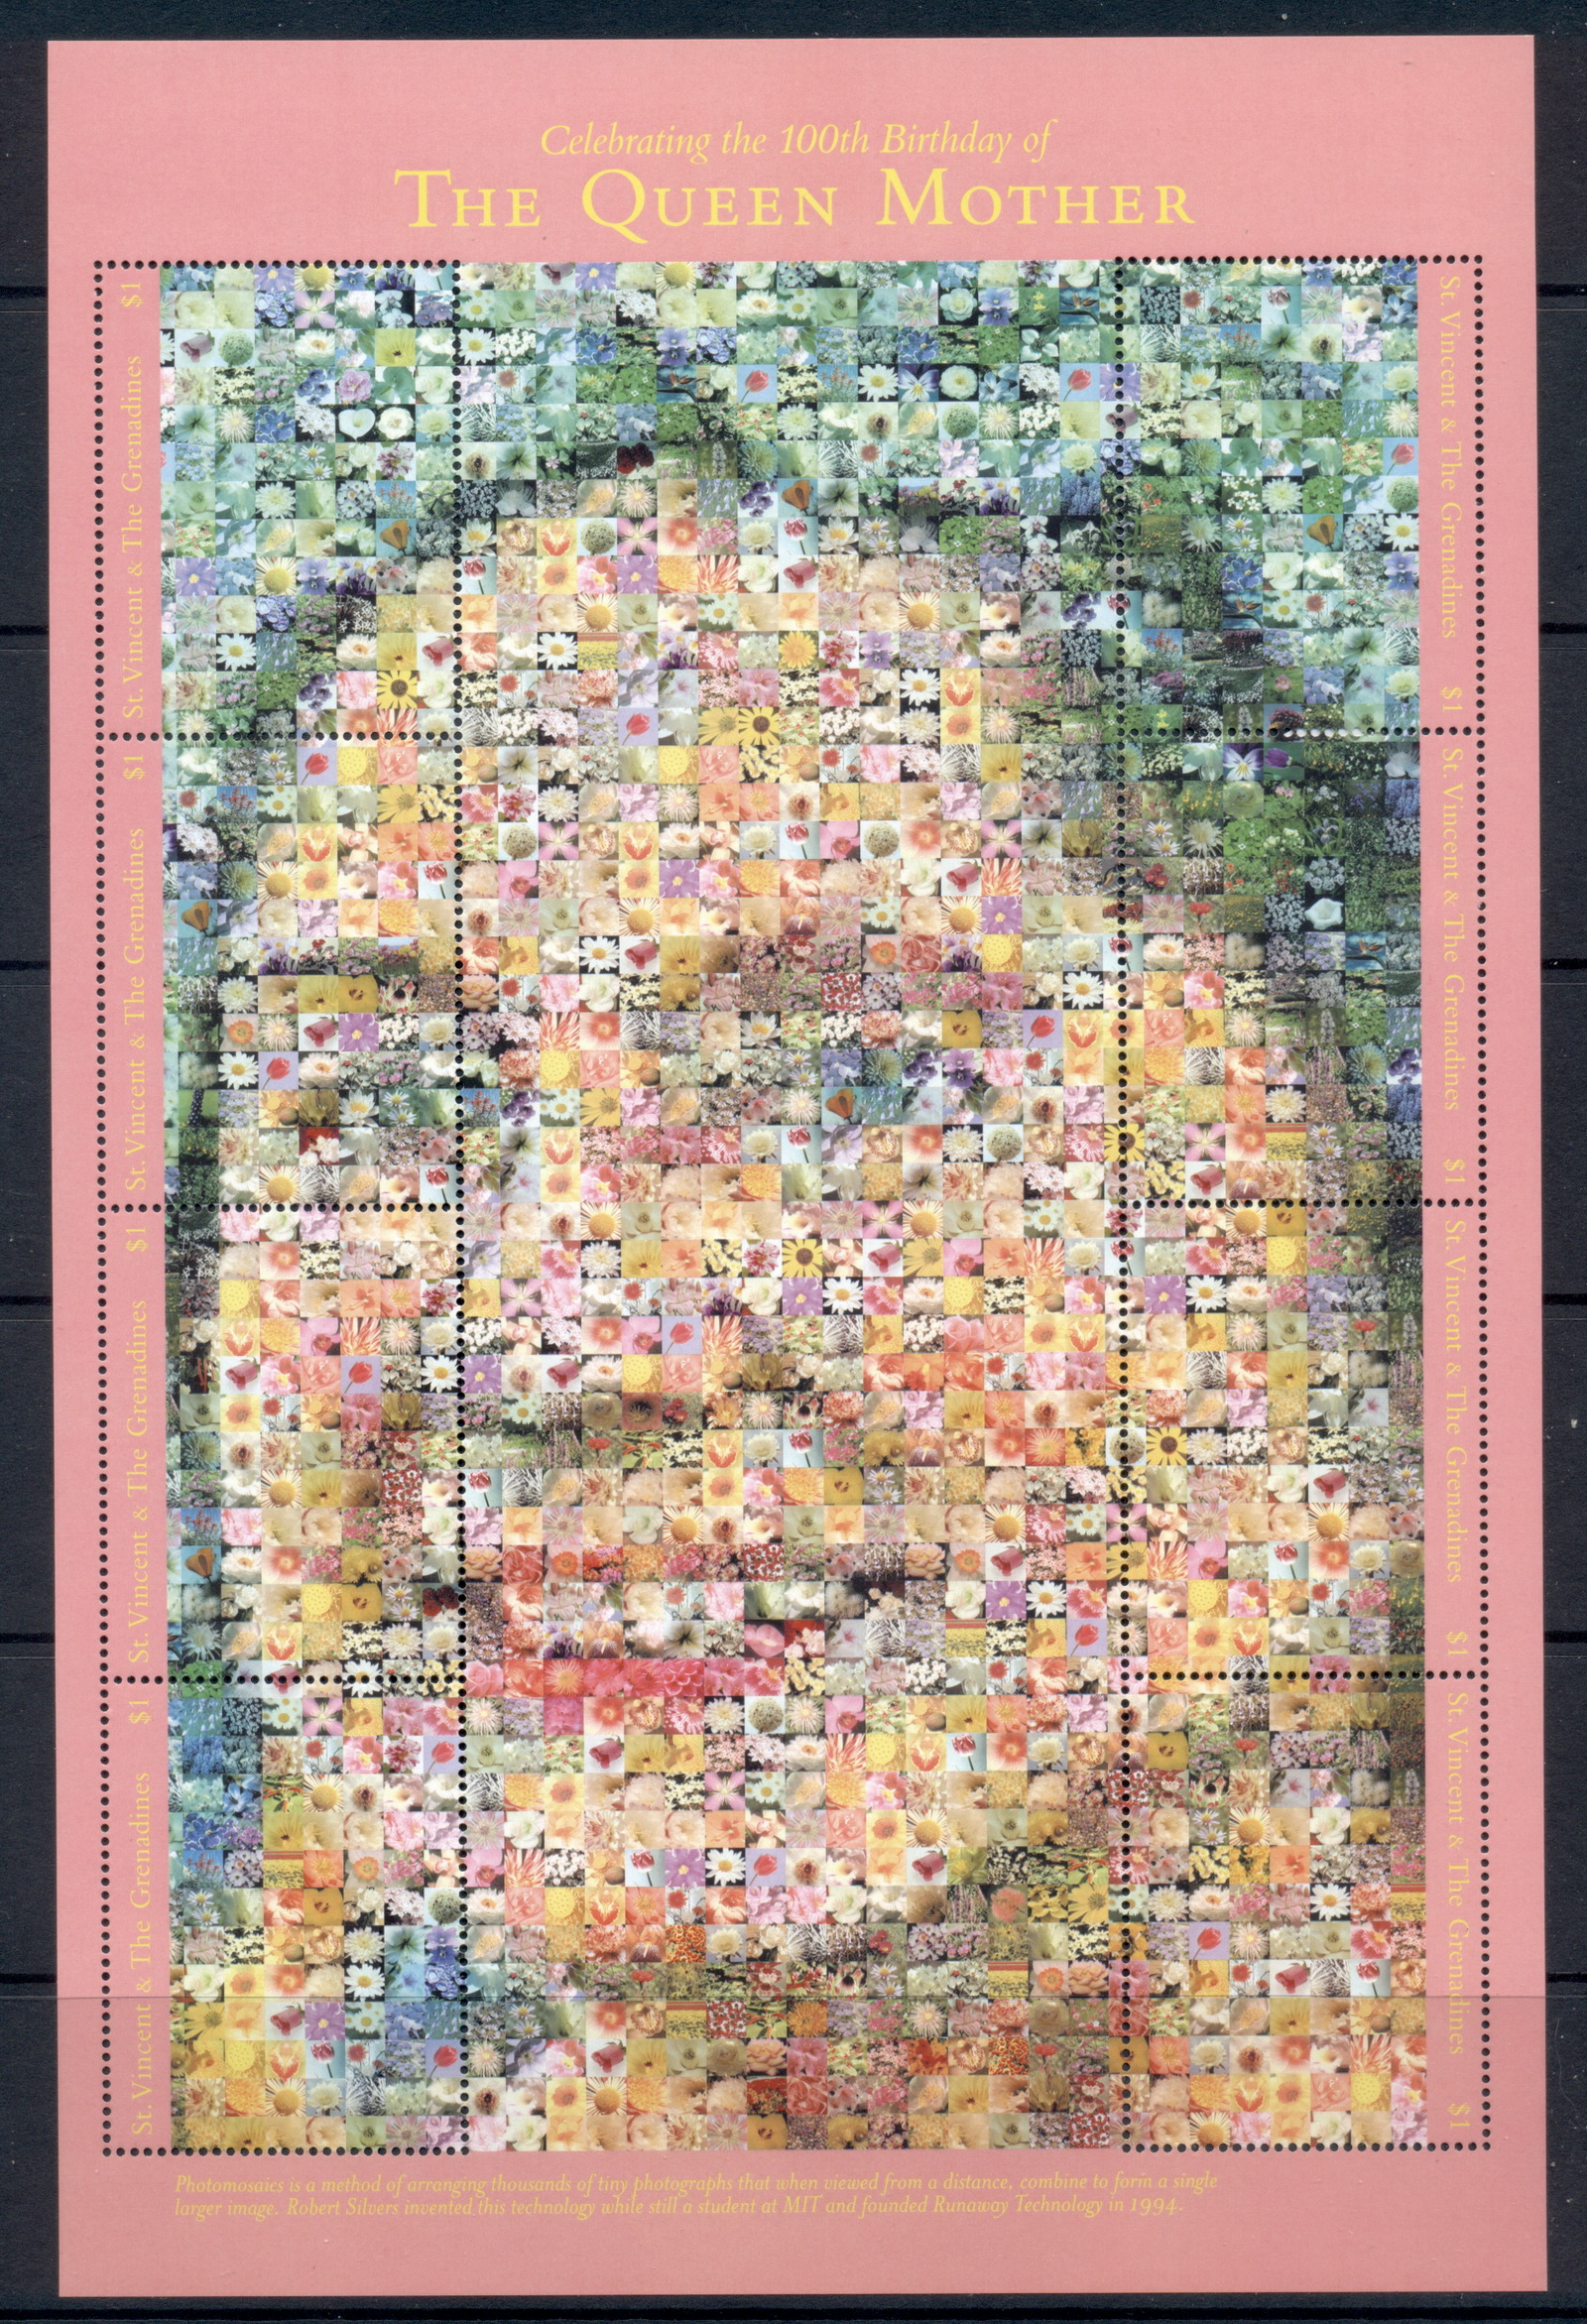 St Vincent Grenadines 2000 Queen Mother 100th Birthday photomosaic MS MUH